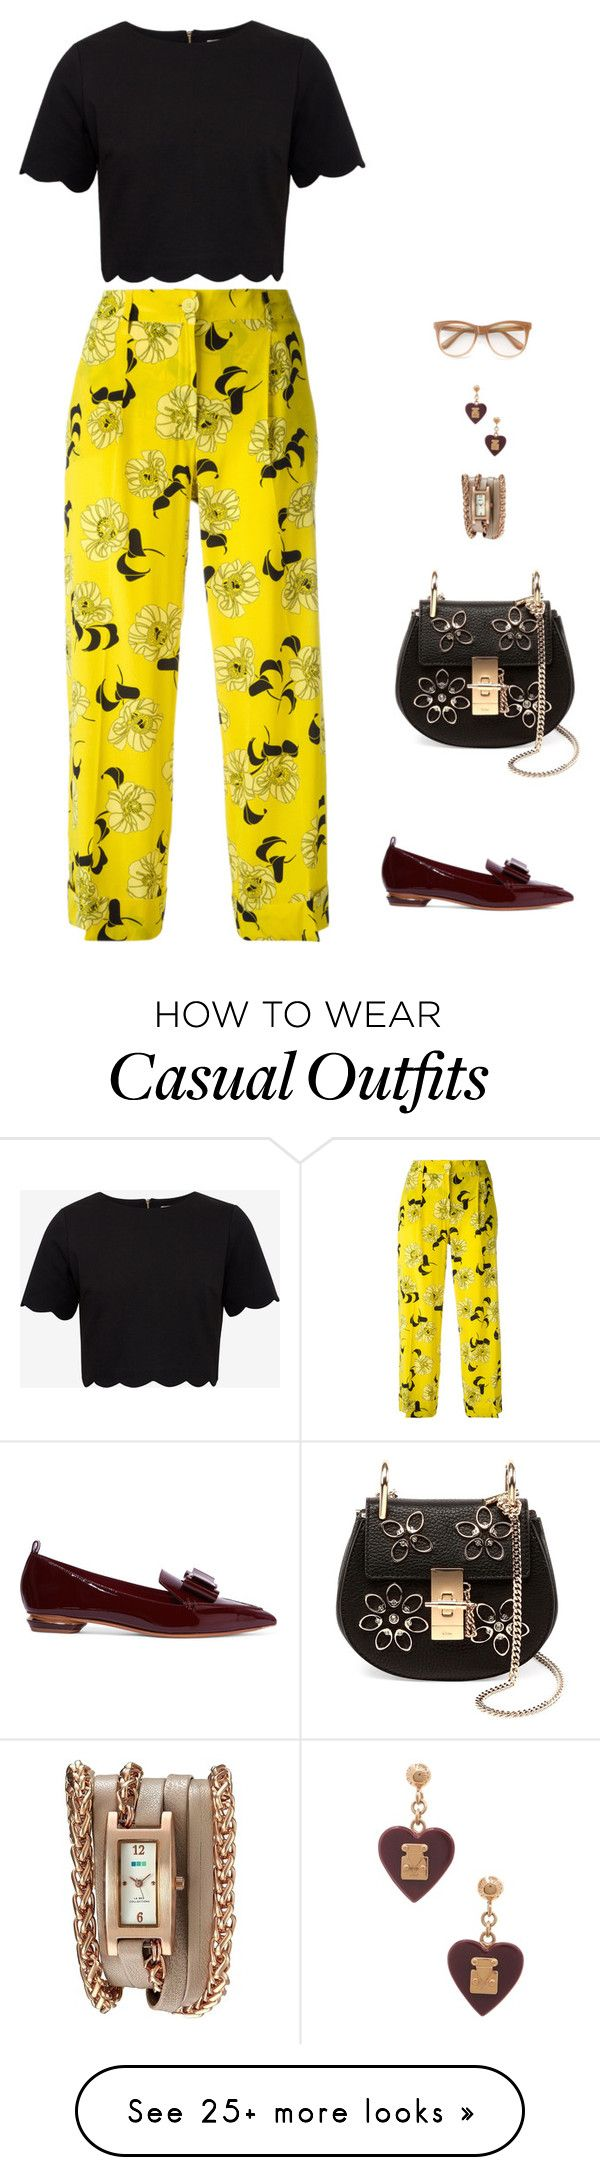 """""""casual elegance"""" by candynena228 on Polyvore featuring Nicholas Kirkwood, P.A.R.O.S.H., Ted Baker, Chloé, La Mer, Louis Vuitton and Wildfox"""